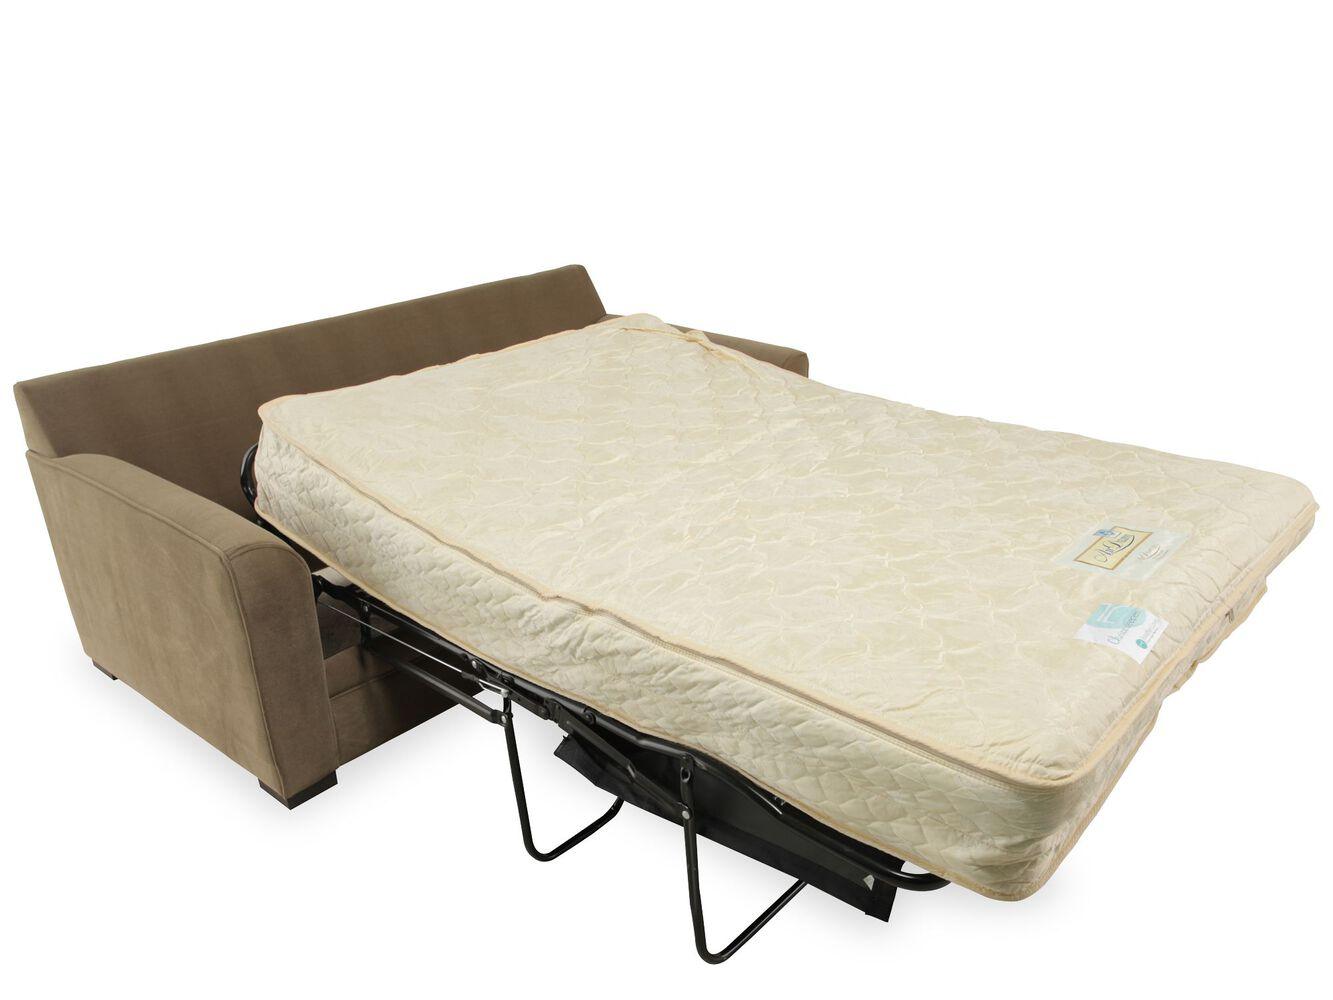 Jonathan louis full sleeper sofa with air mattress for Sofa bed air mattress